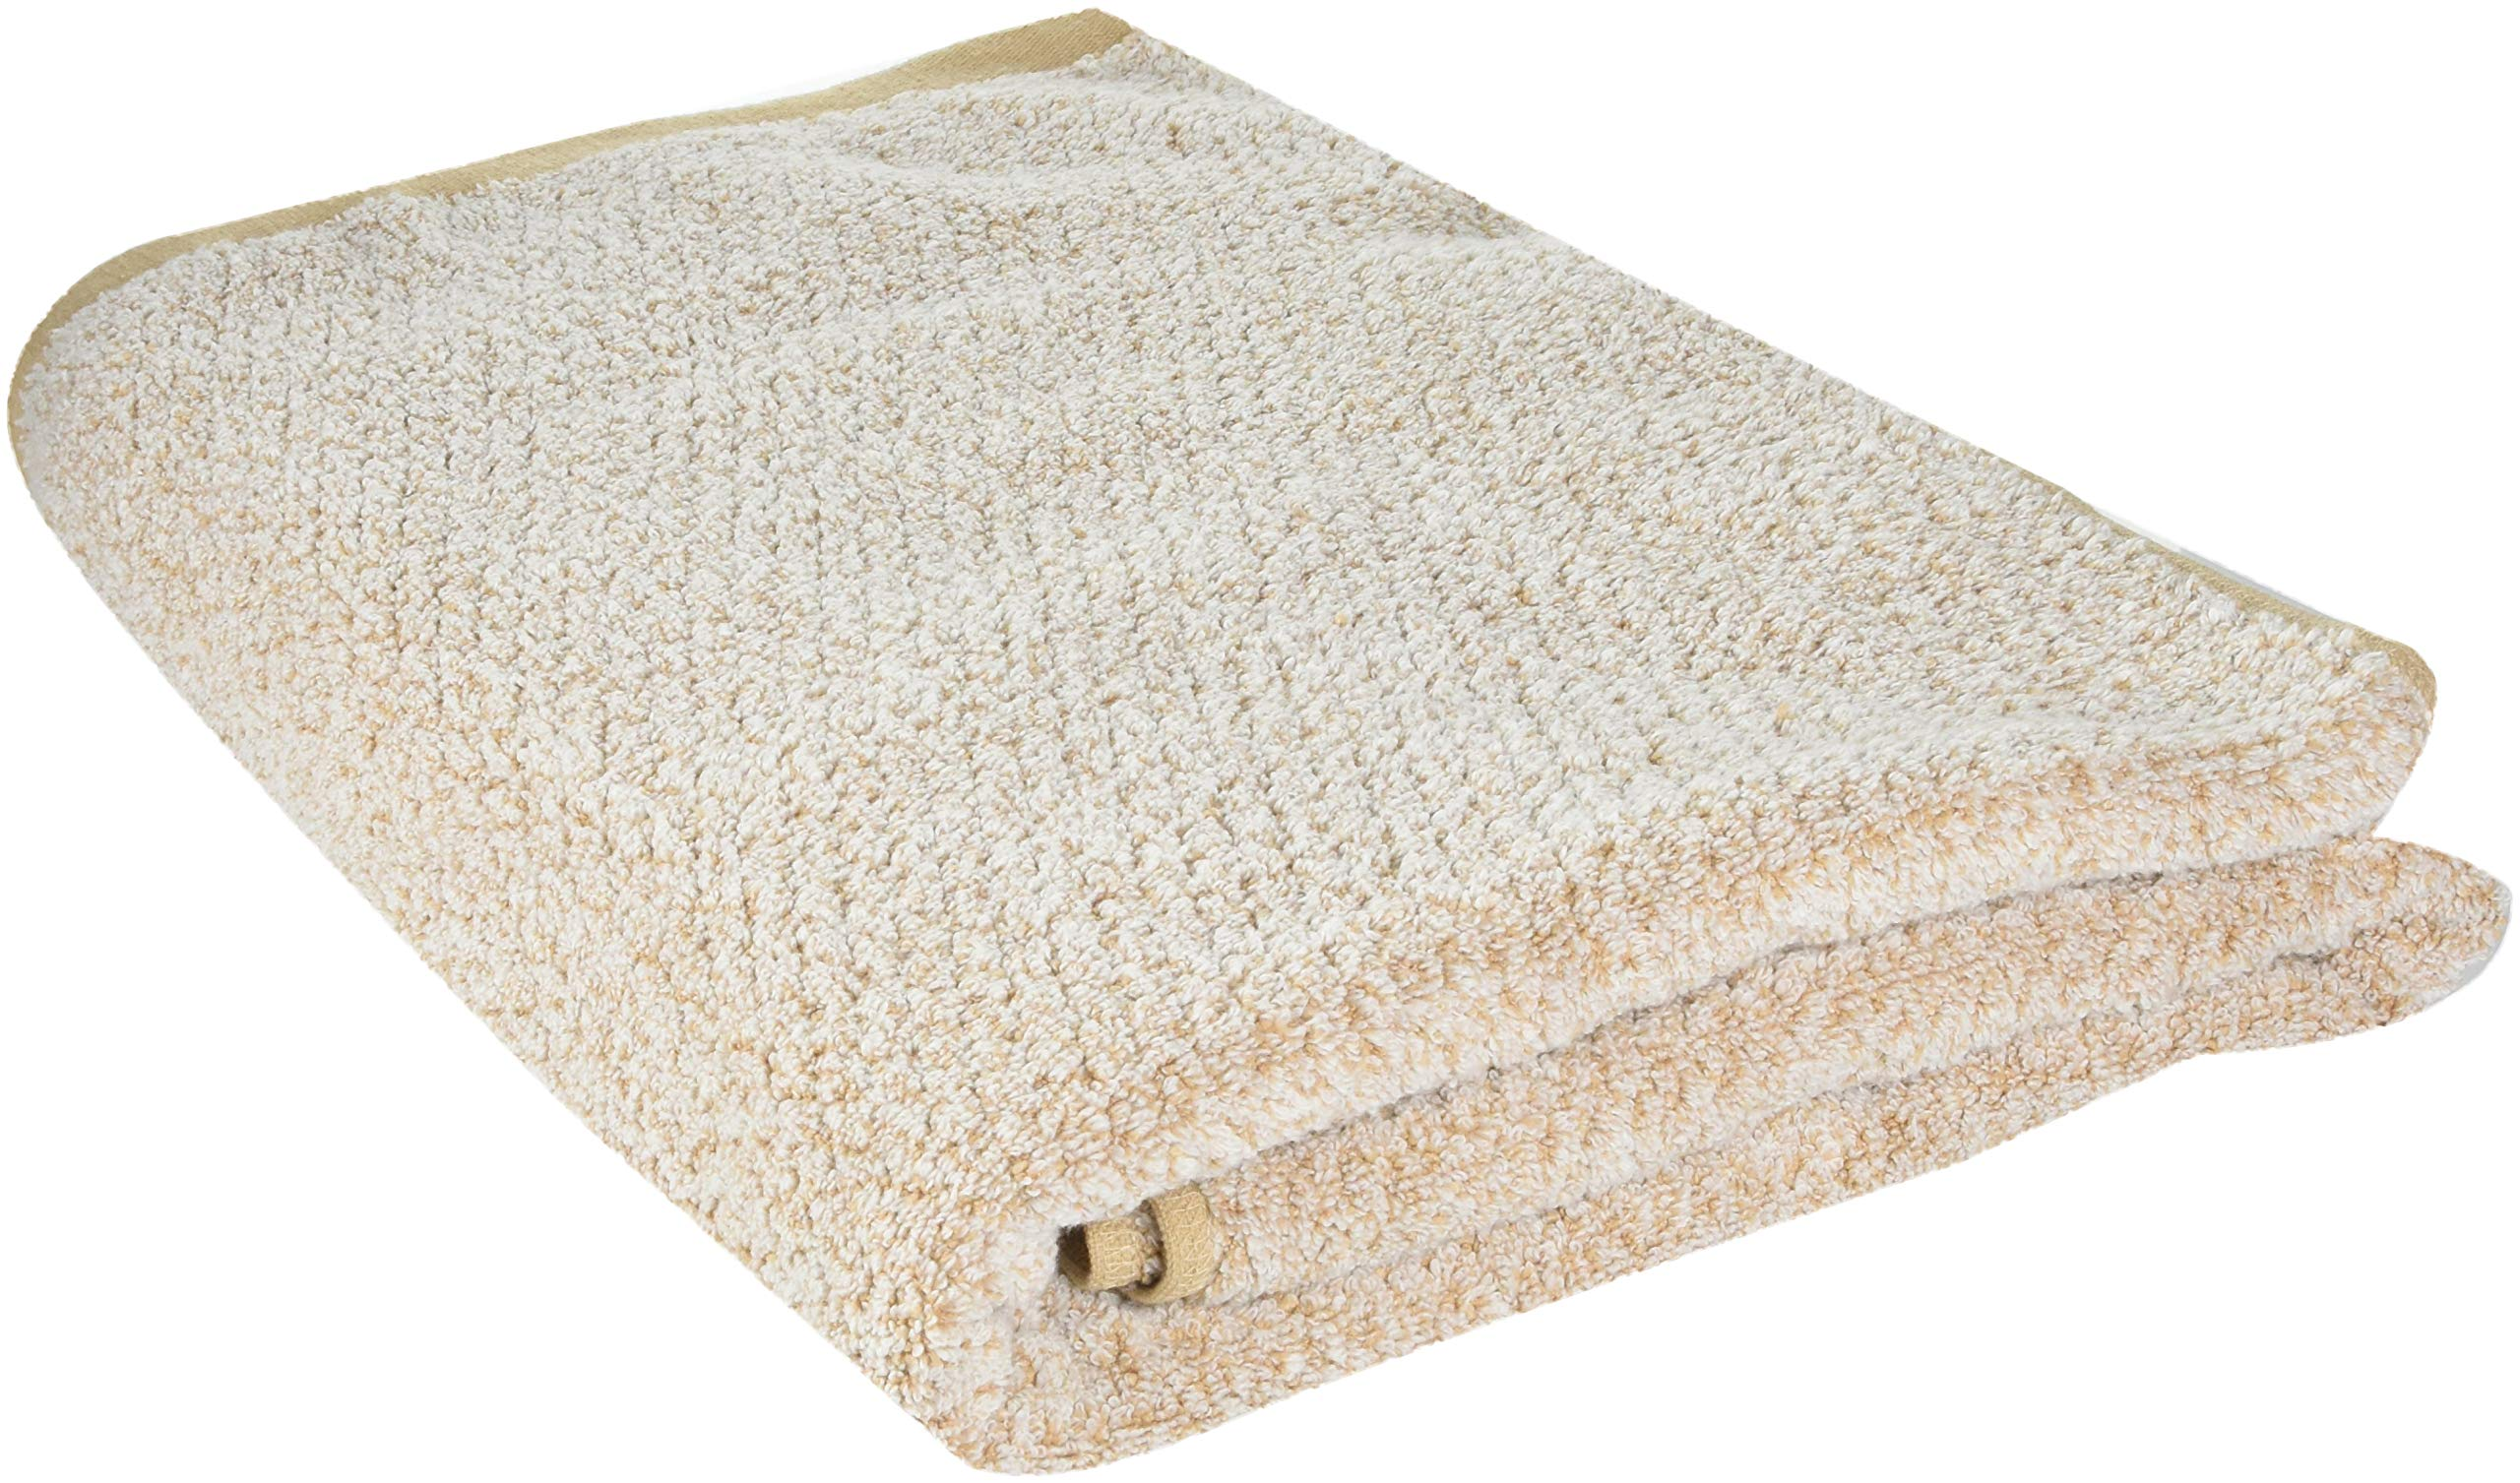 Everplush Diamond Jacquard Bath Sheet 2 Pack in Brown